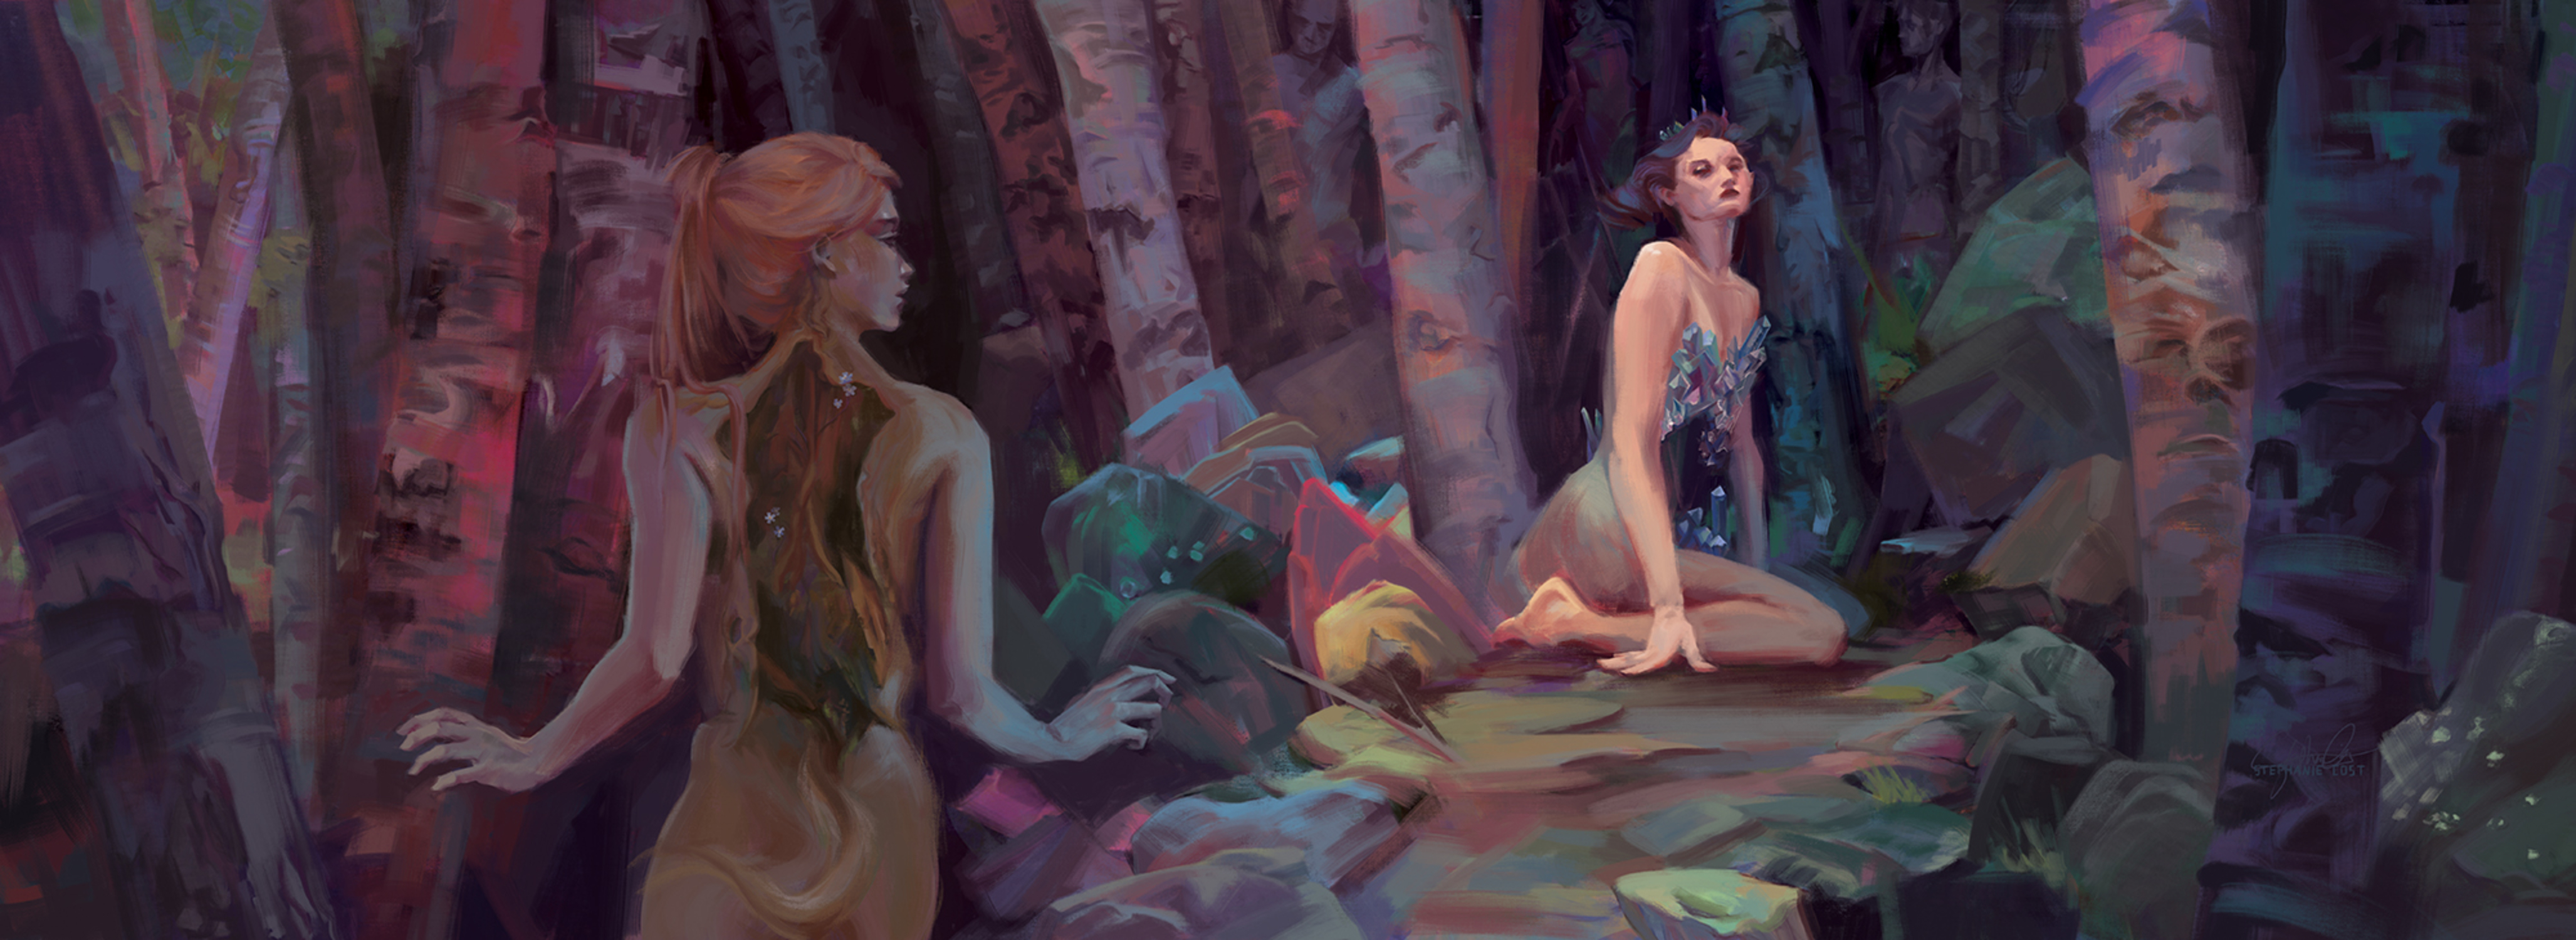 Huldra And The Crystal Queen Artwork by Stephanie Cost